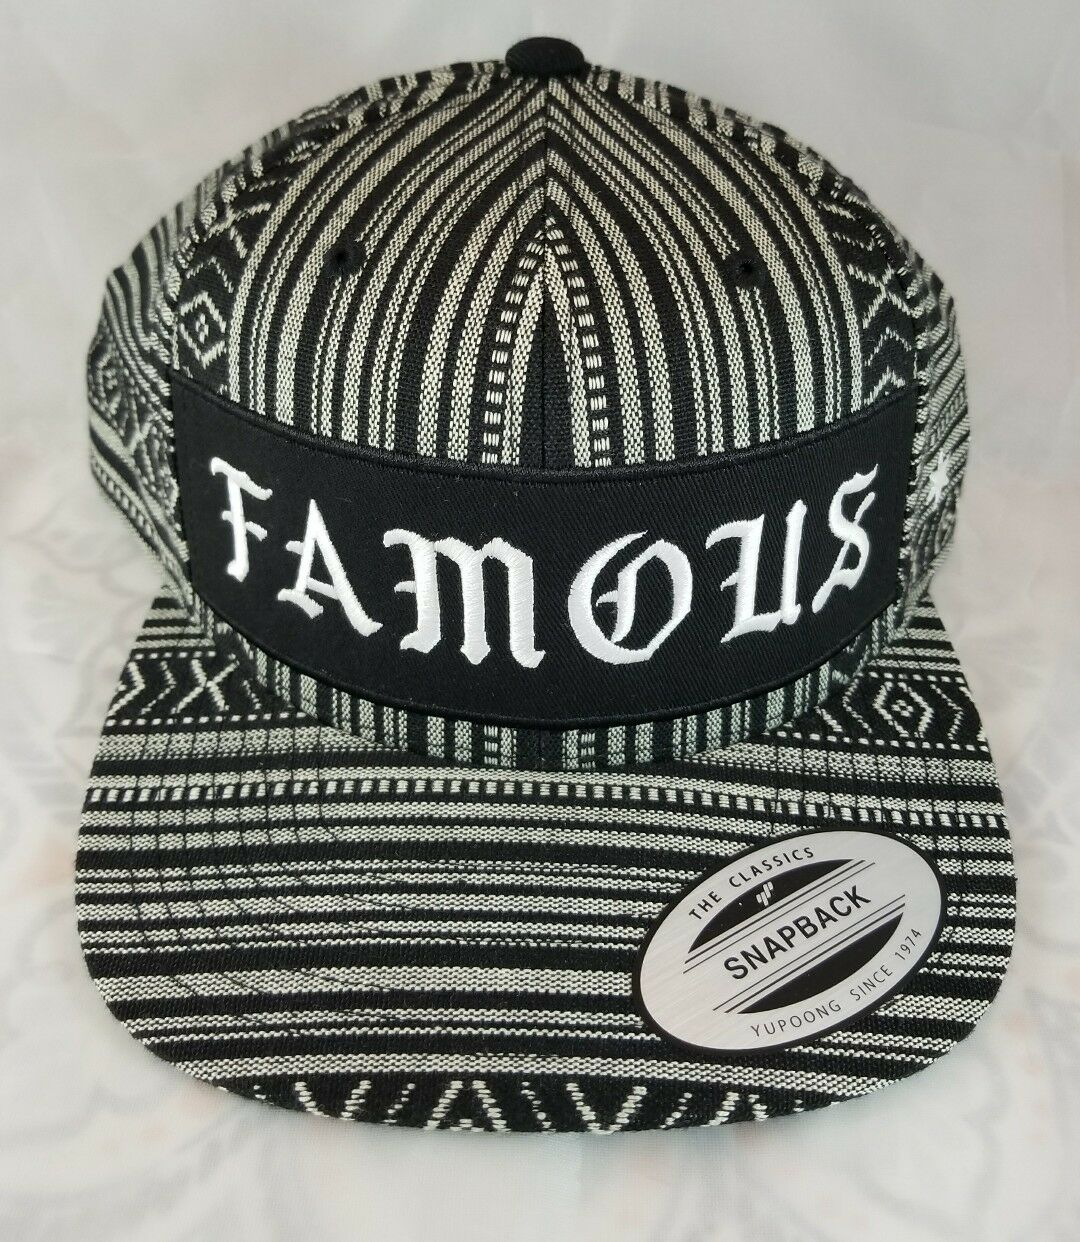 Famous stars stars Famous and straps adjustable hat 16c511